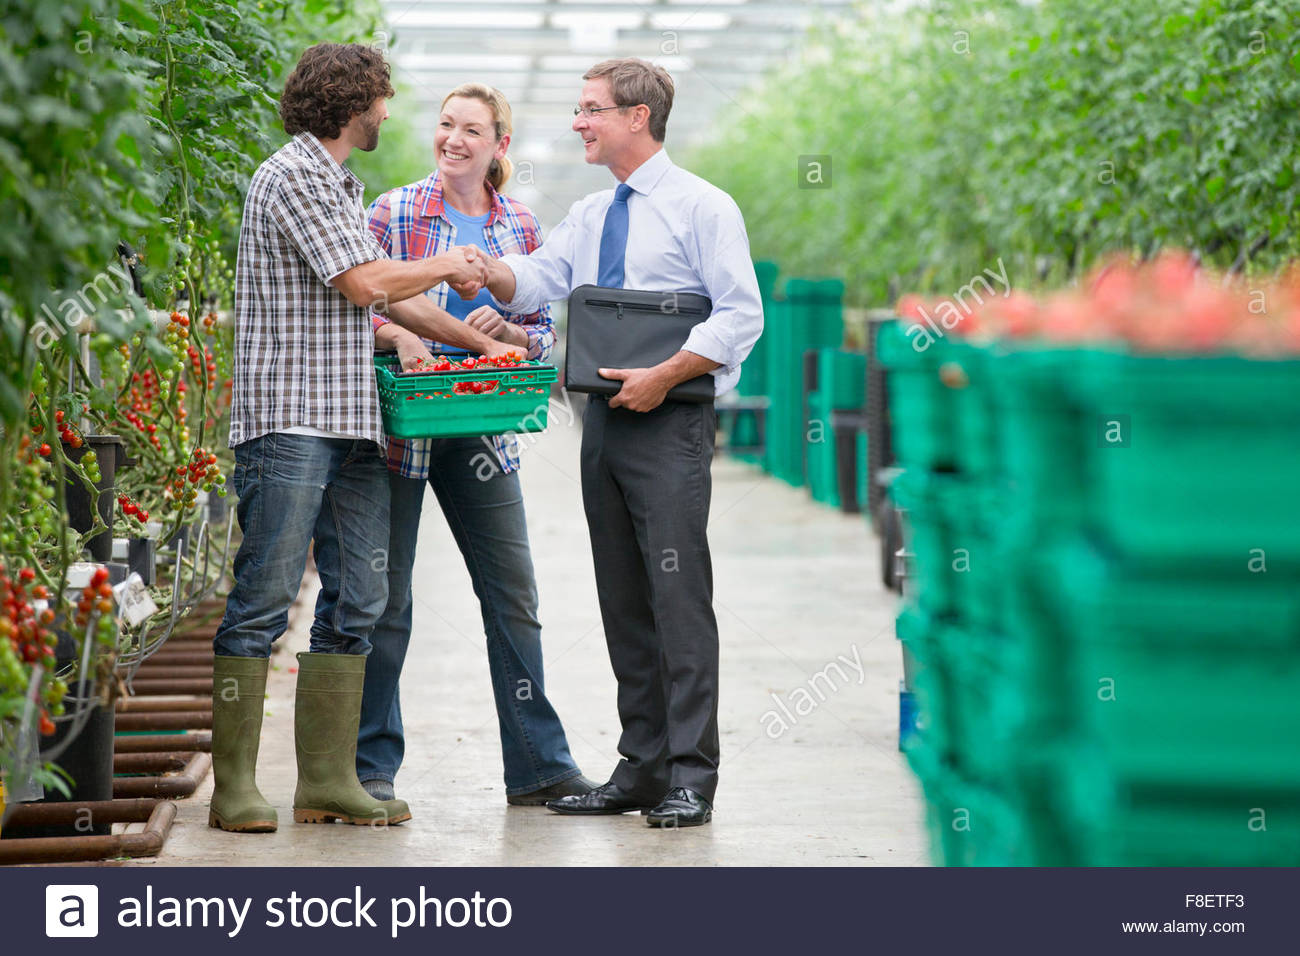 Businessman and growers with crate of tomatoes handshaking in greenhouse - Stock Image